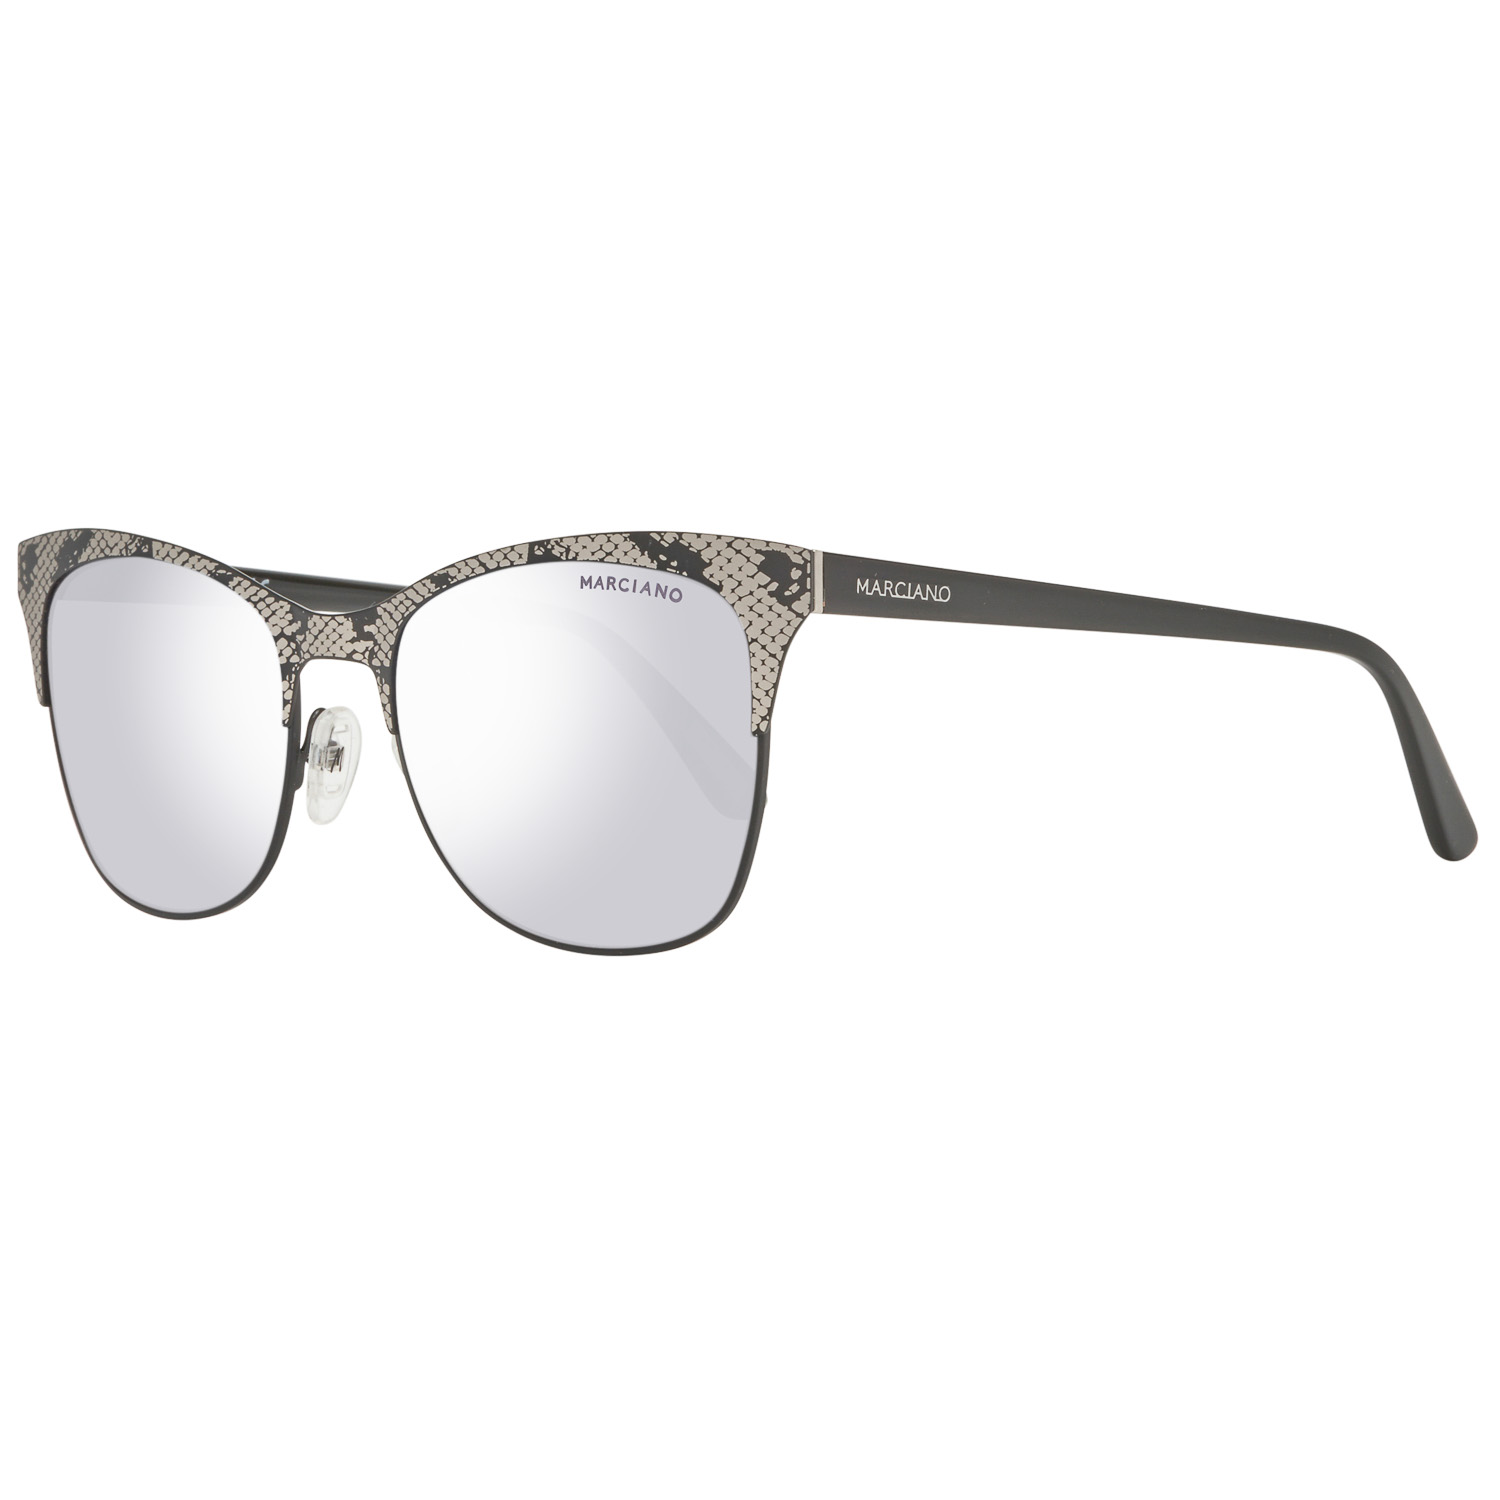 Guess by Marciano Sunglasses GM0774 02B 53 Multicolor